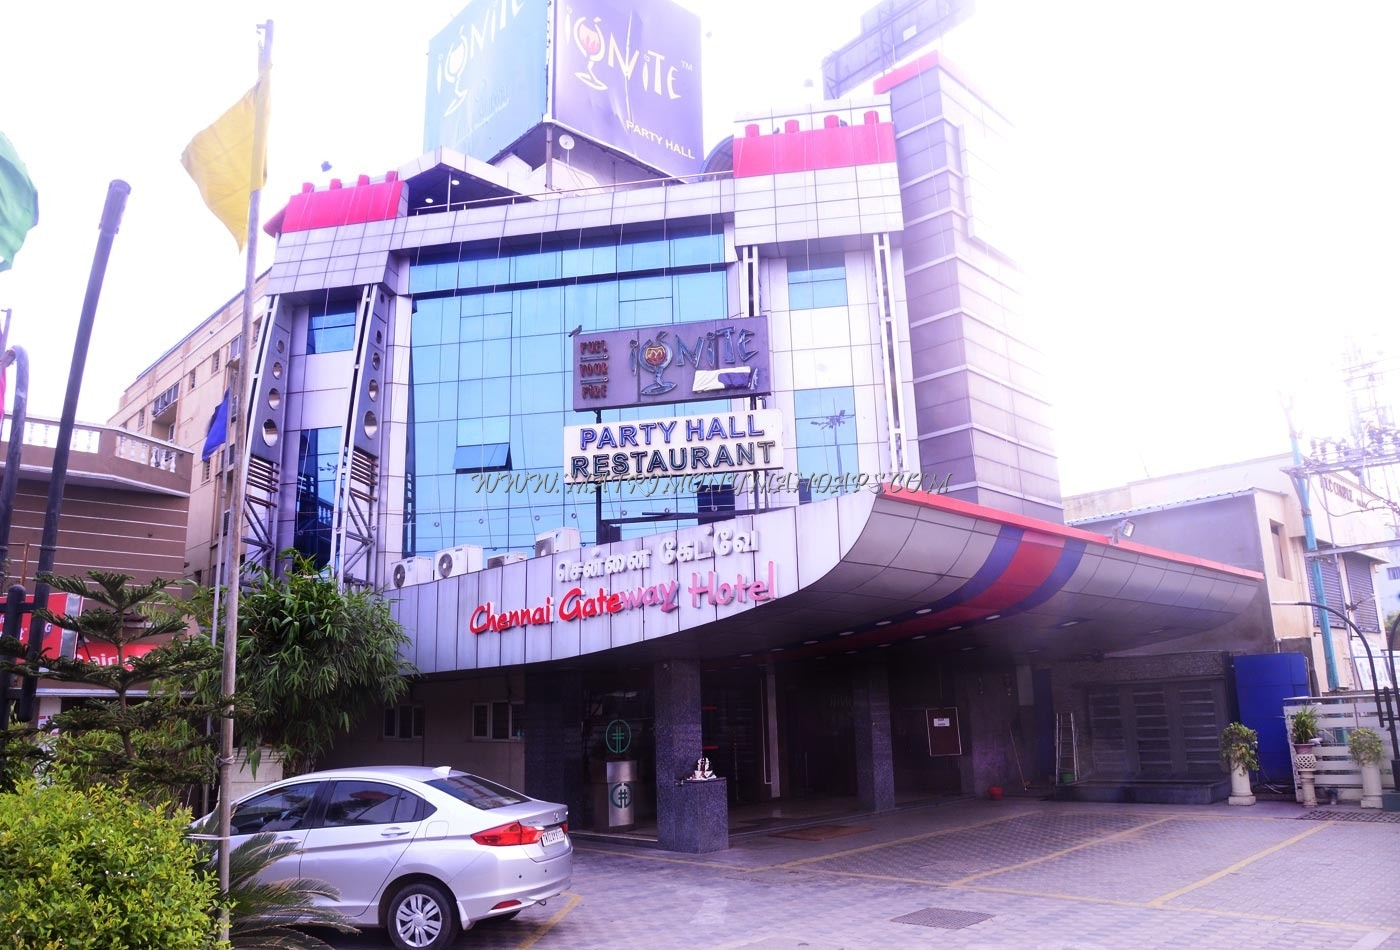 Find the availability of the Hotel Chennai Gateway (A/C) in Koyambedu, Chennai and avail special offers